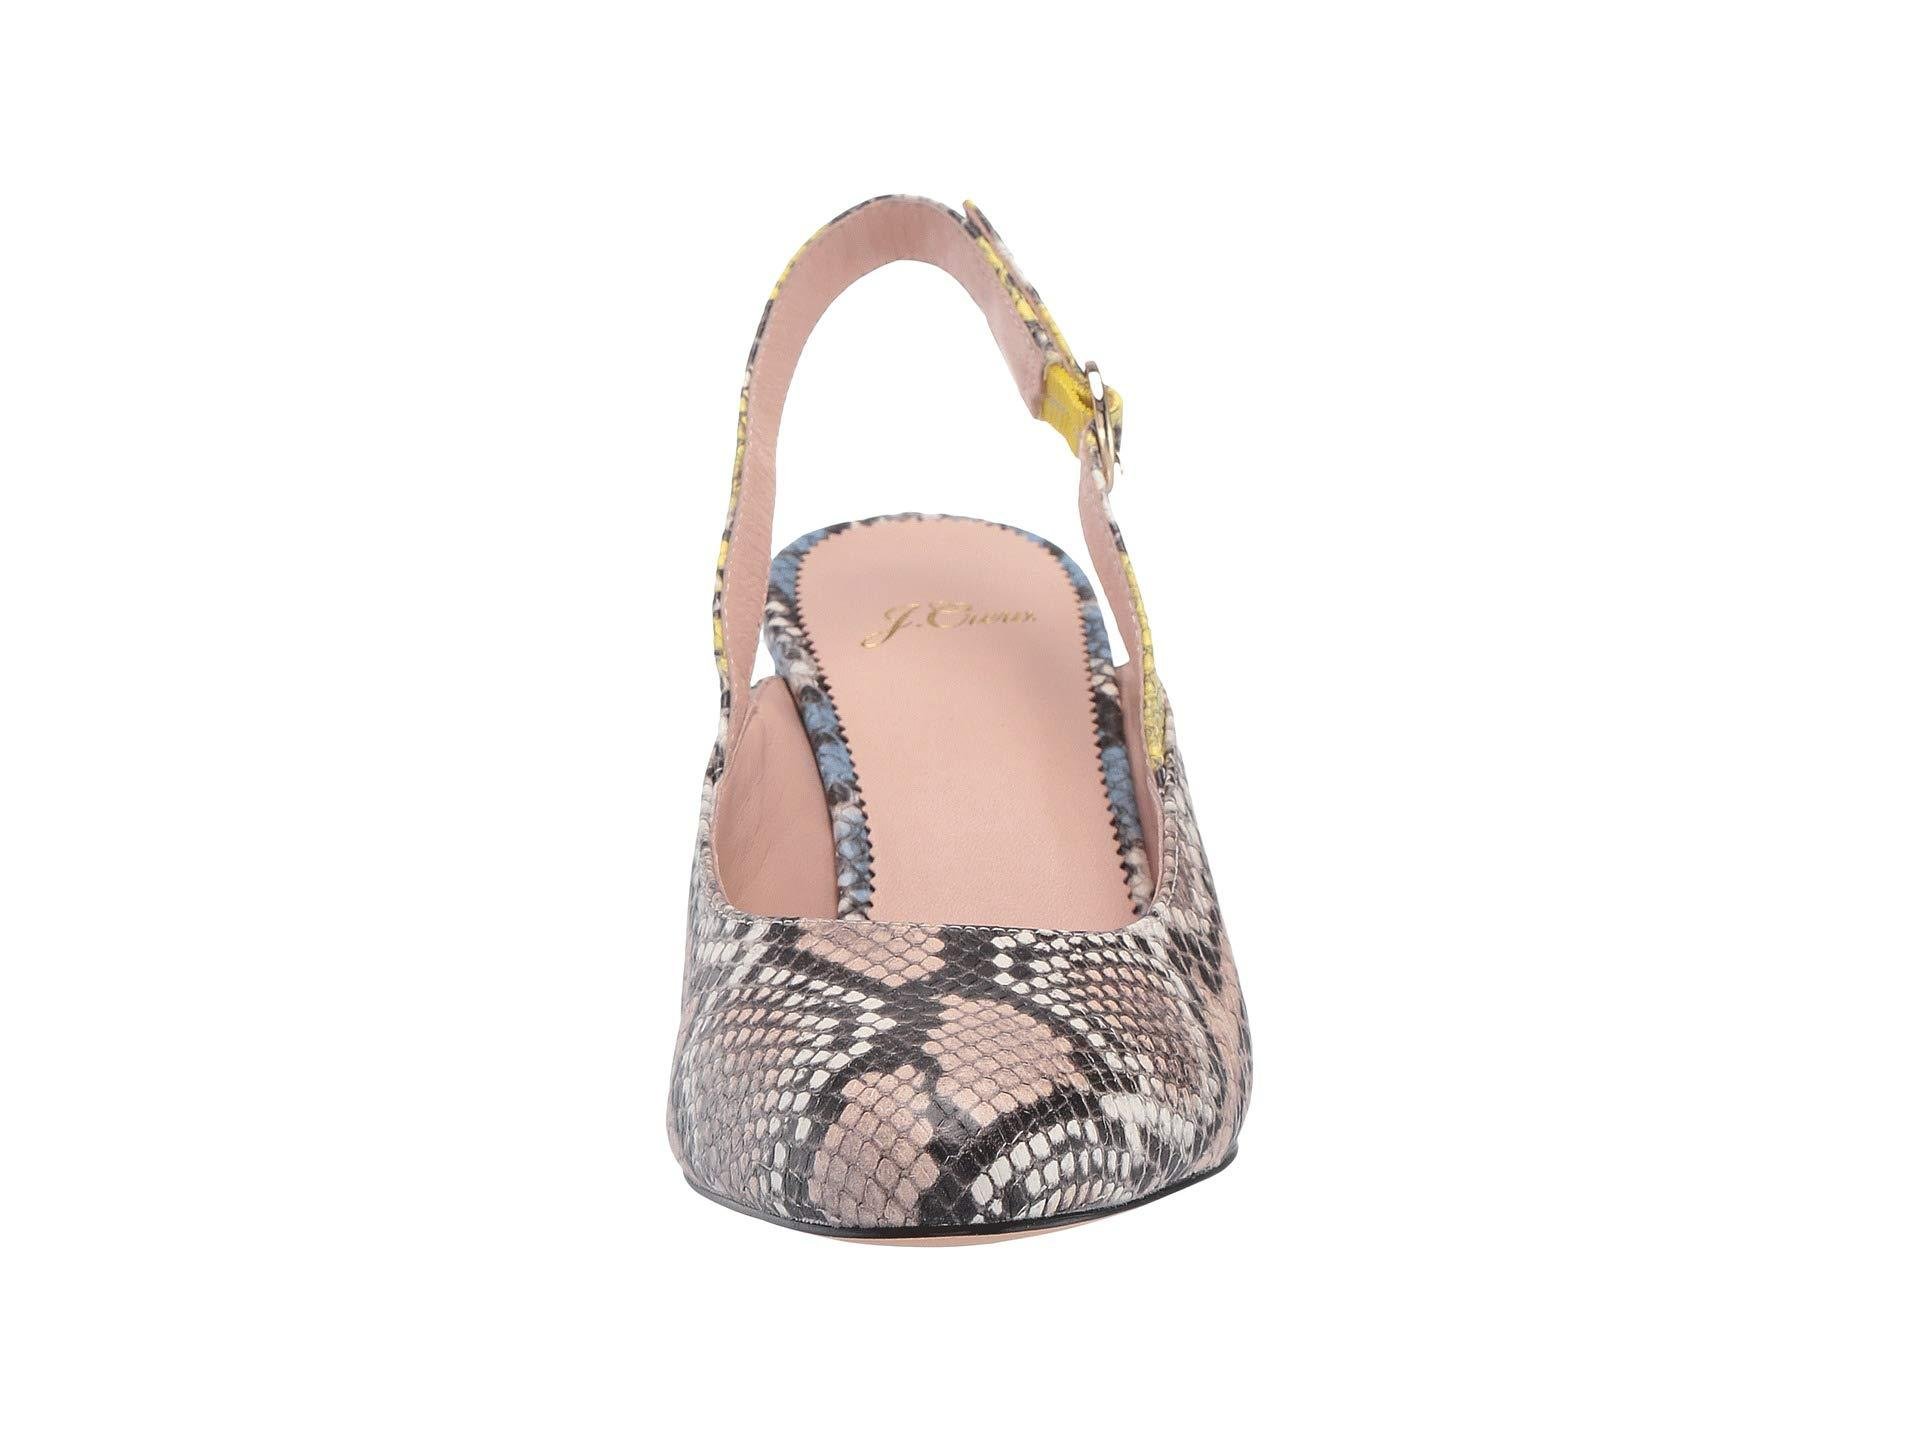 62671a12dc0 J.Crew - Slingback Sage Pump In Mixed Snake (sunwashed Pink) Women s Shoes.  View fullscreen